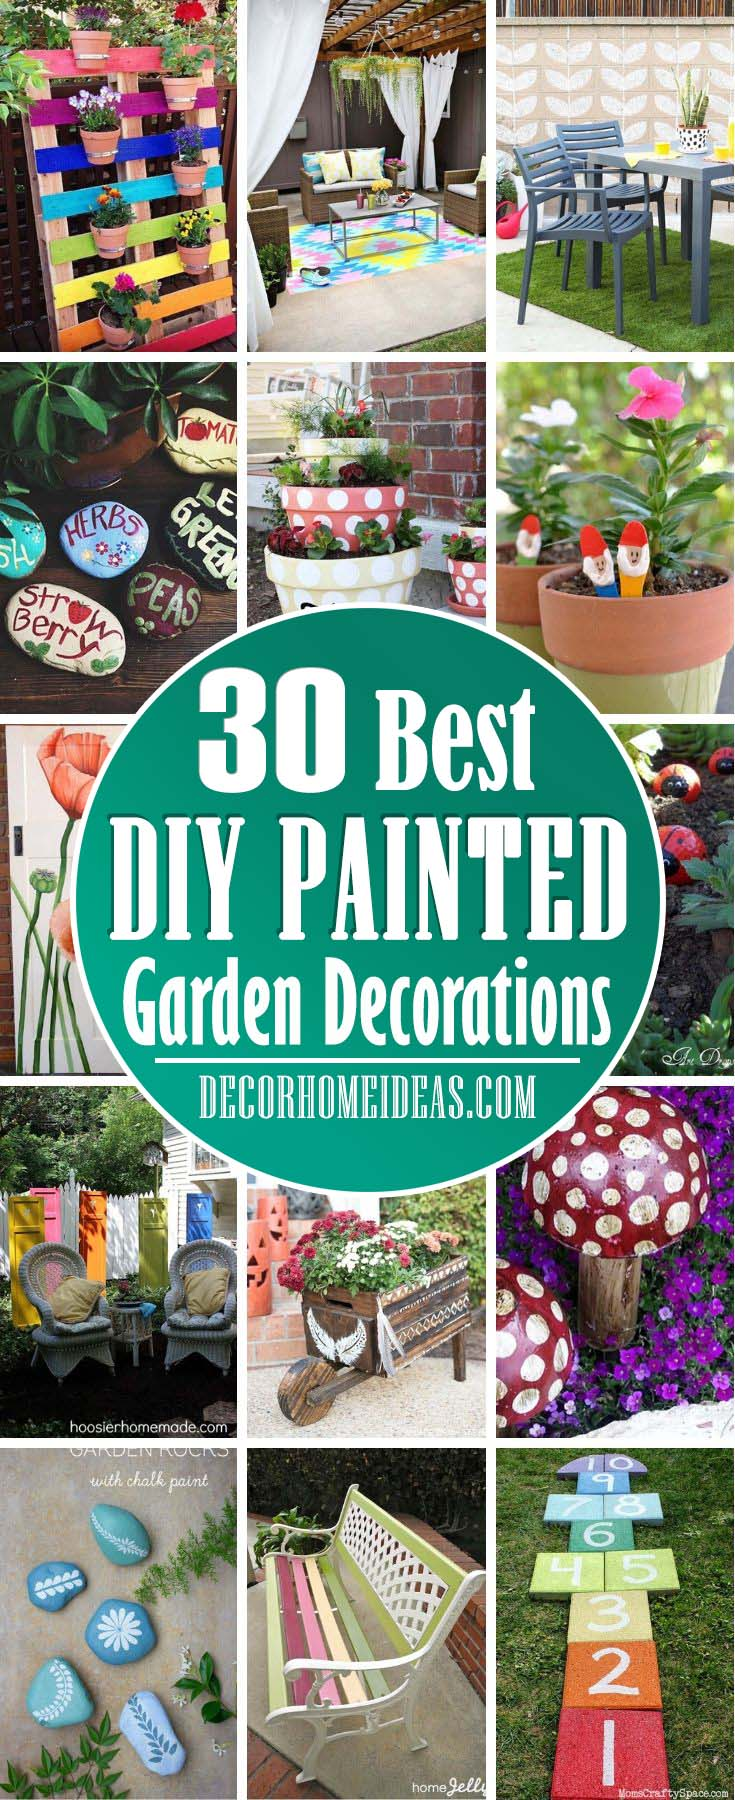 Best Painted Garden Decorations. Add some color to your garden furniture, planters and patio to make them more vibrant and add extra texture. #diy #paint #garden #decorhomeideas